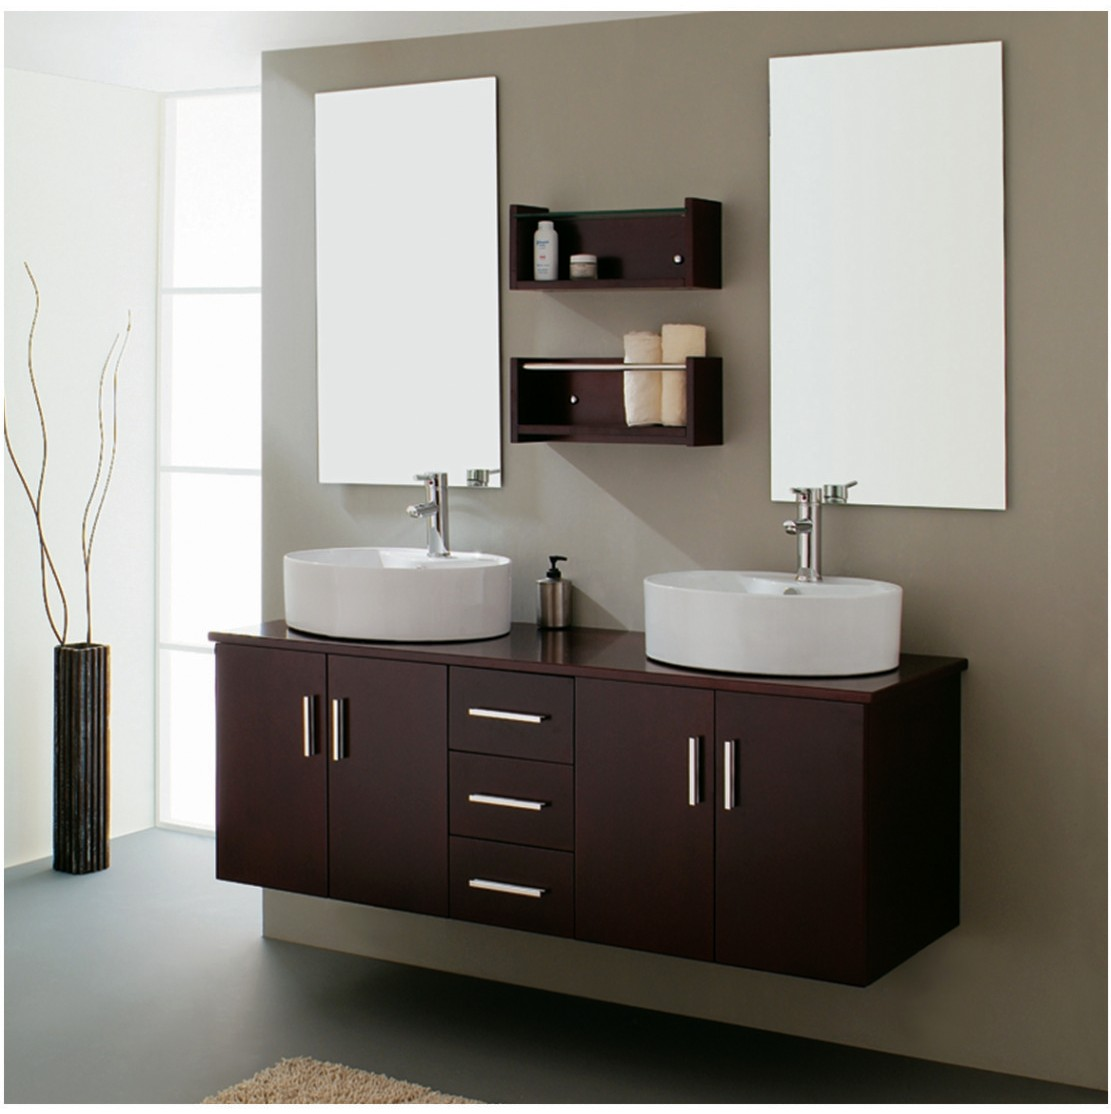 Modern bathroom double sink home decorating ideas for Double basin bathroom sinks